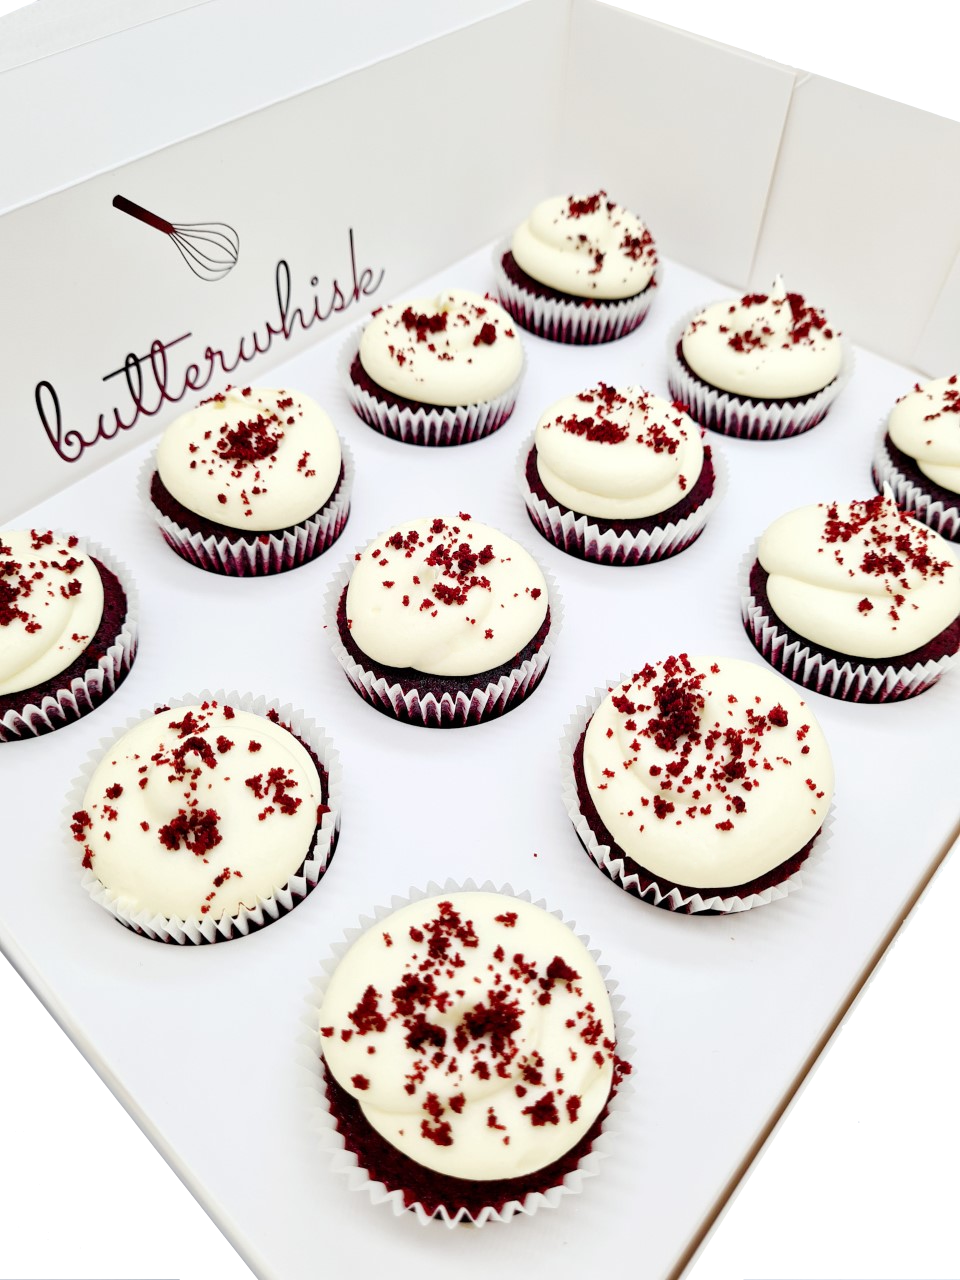 Cream cheese frosting on red velvet cupcakes